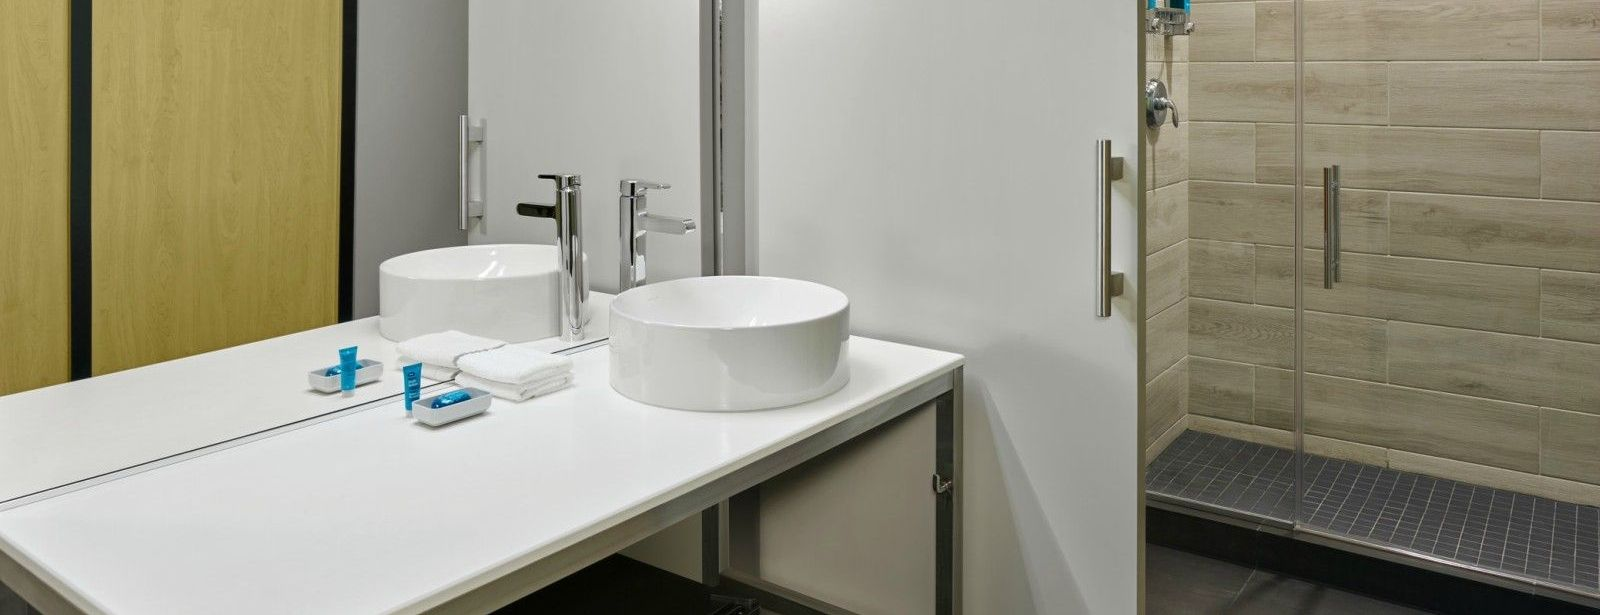 Miami Airport Accommodations - Aloft Guest Bathroom